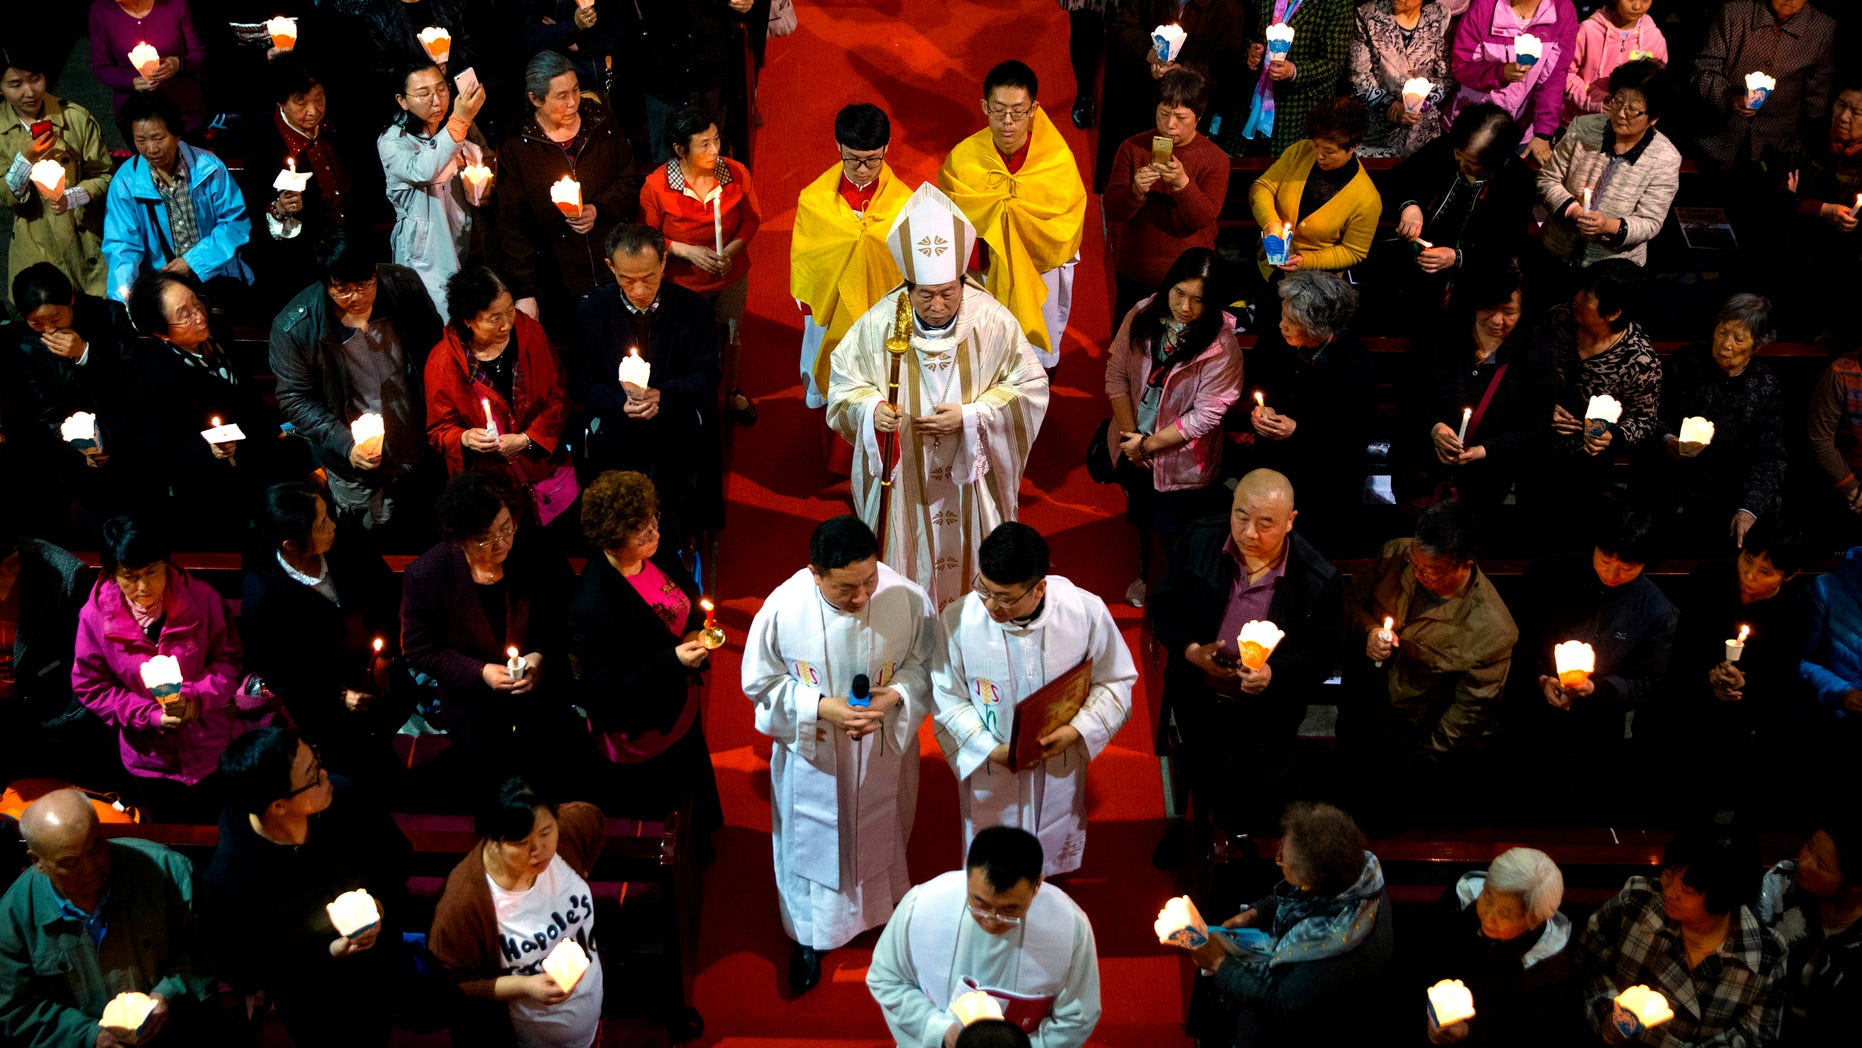 FILE - In this Saturday, March 31, 2018, file photo, Chinese Bishop Joseph Li Shan, center, walks down the aisle during a Holy Saturday Mass on the evening before Easter at the Cathedral of the Immaculate Conception, a government-sanctioned Catholic church in Beijing. (AP Photo/Mark Schiefelbein, File)